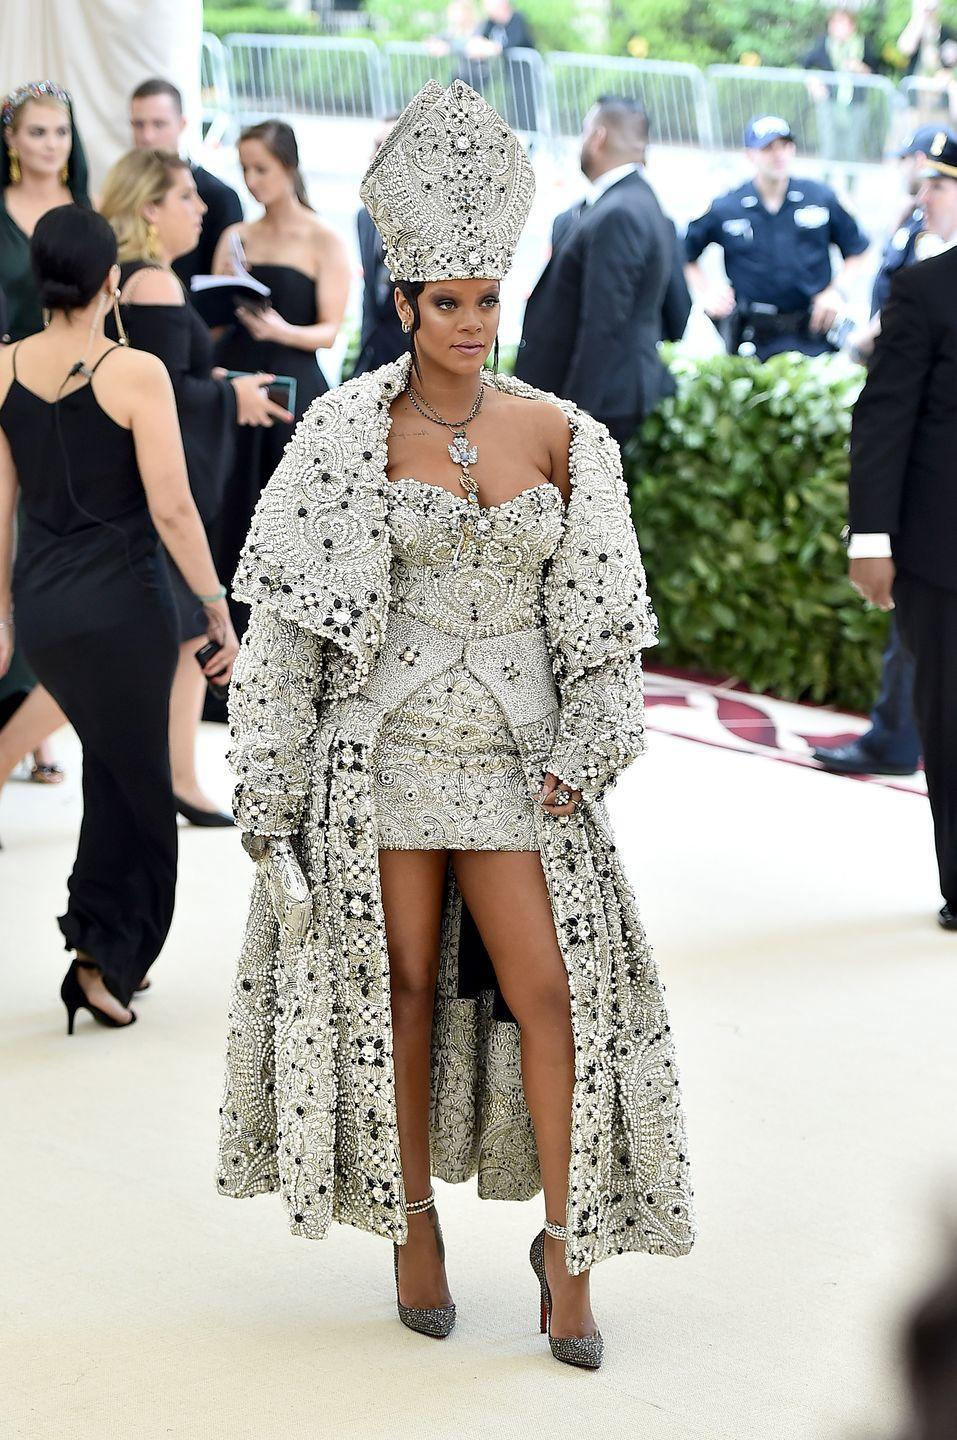 """<p>The theme of the 2018 Met Gala was Heavenly Bodies, and Rihanna certainly delivered in this beaded John Galliano dress and matching pope-inspired headpiece. But not everyone was a fan. Some <a href=""""https://www.standard.co.uk/showbiz/celebrity-news/rihanna-channels-popechic-with-religious-met-gala-gown-but-catholics-are-fuming-with-disgusting-outfit-a3832891.html"""" rel=""""nofollow noopener"""" target=""""_blank"""" data-ylk=""""slk:people on social media"""" class=""""link rapid-noclick-resp"""">people on social media</a> slammed Rihanna, saying the outfit was """"so offensive"""" and made """"a mockery of Christian religion.""""</p>"""